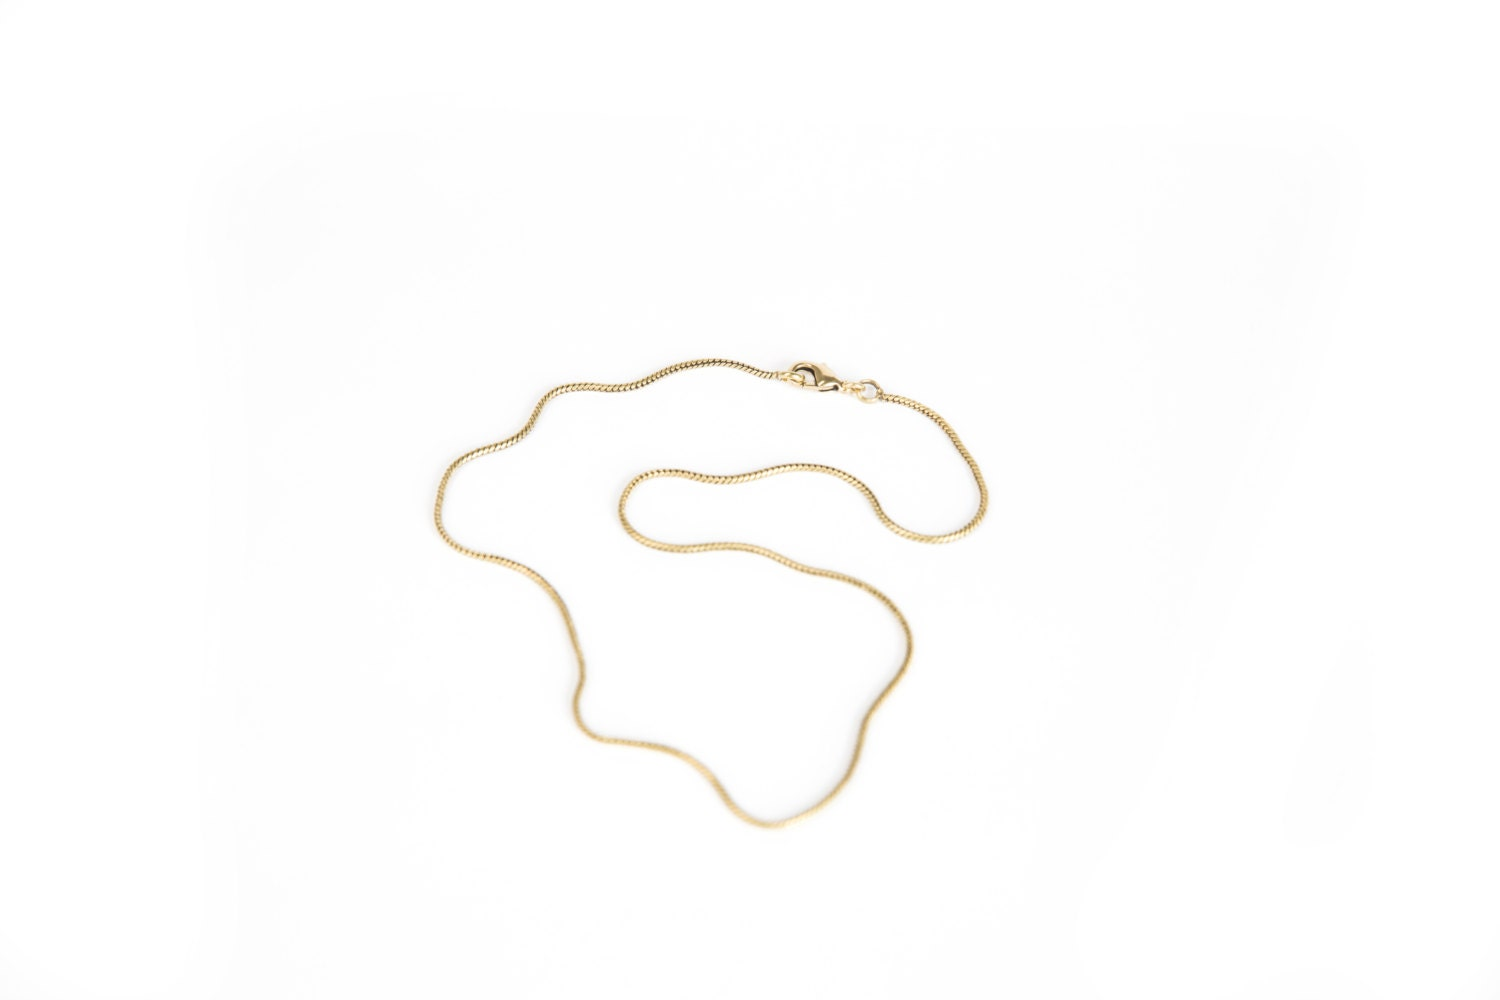 Brass Snake Chain Brass Necklace 16 18 20 21 22 24 26 28 30 36 Thin Brass Chain  Free UK Delivery